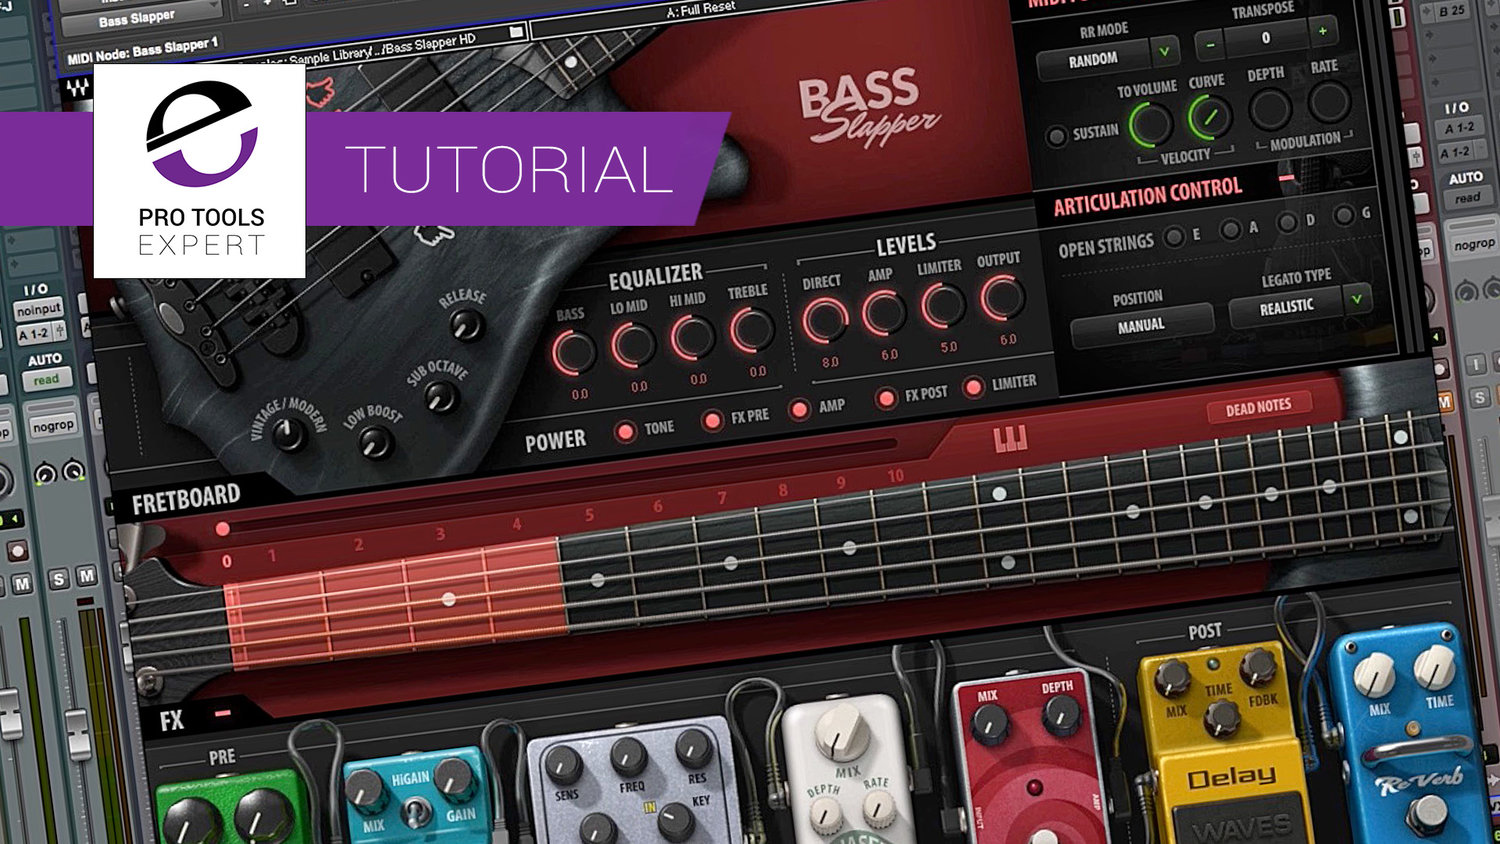 Tutorial - Using Waves Bass Slapper - Hear Bass Slapper